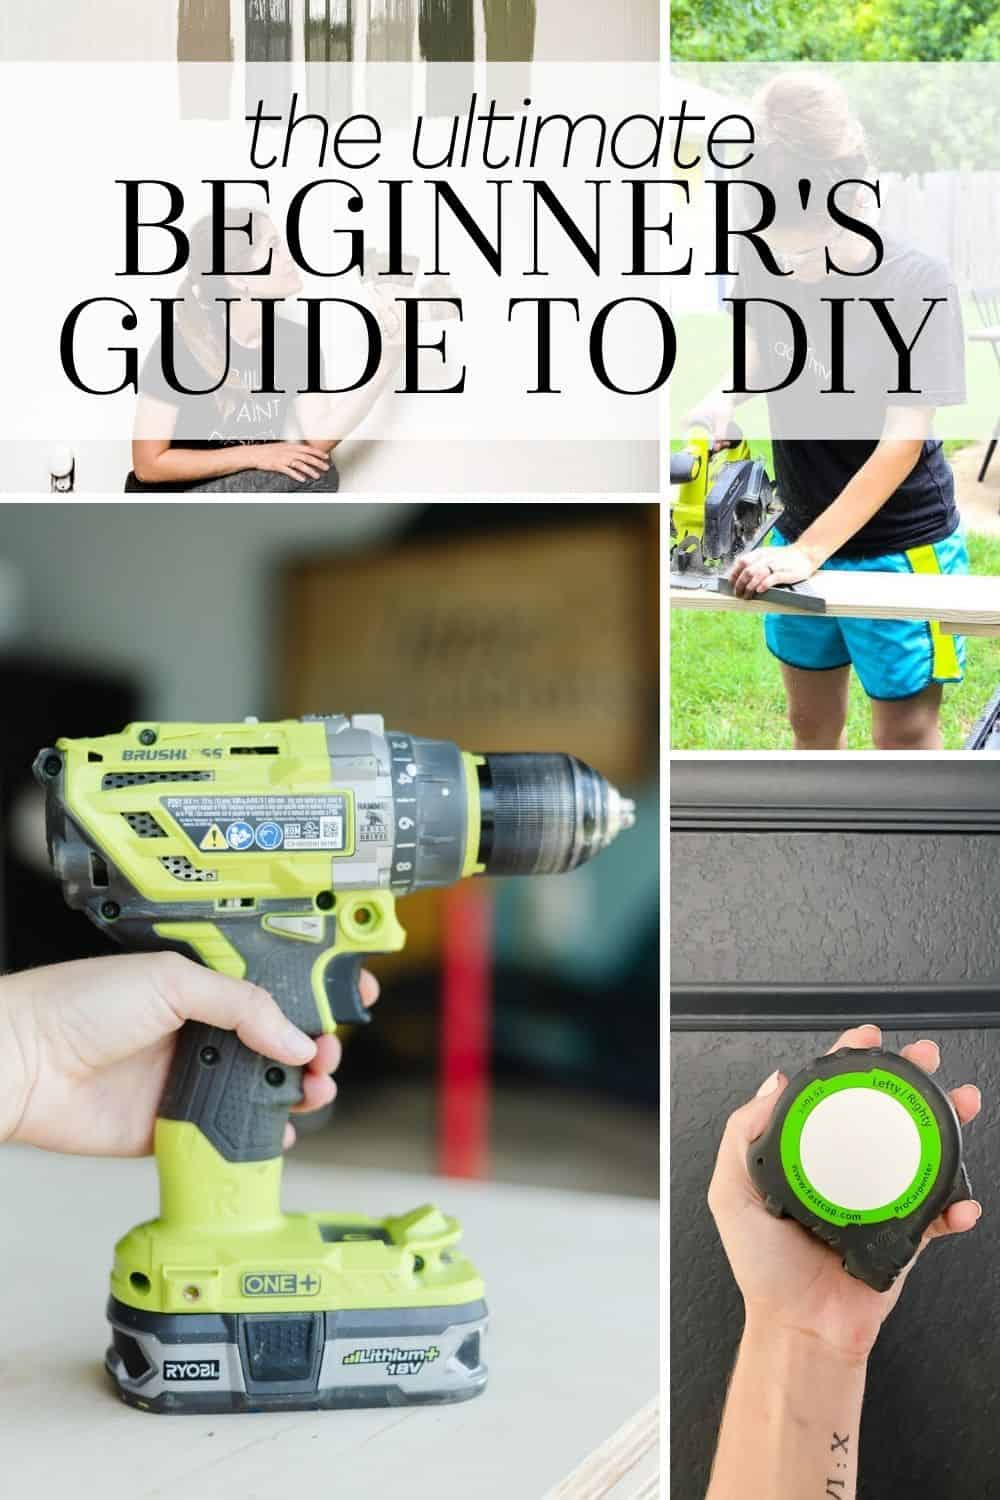 a collage of DIY-related images with text overlay - the ultimate beginner's guide to DIY